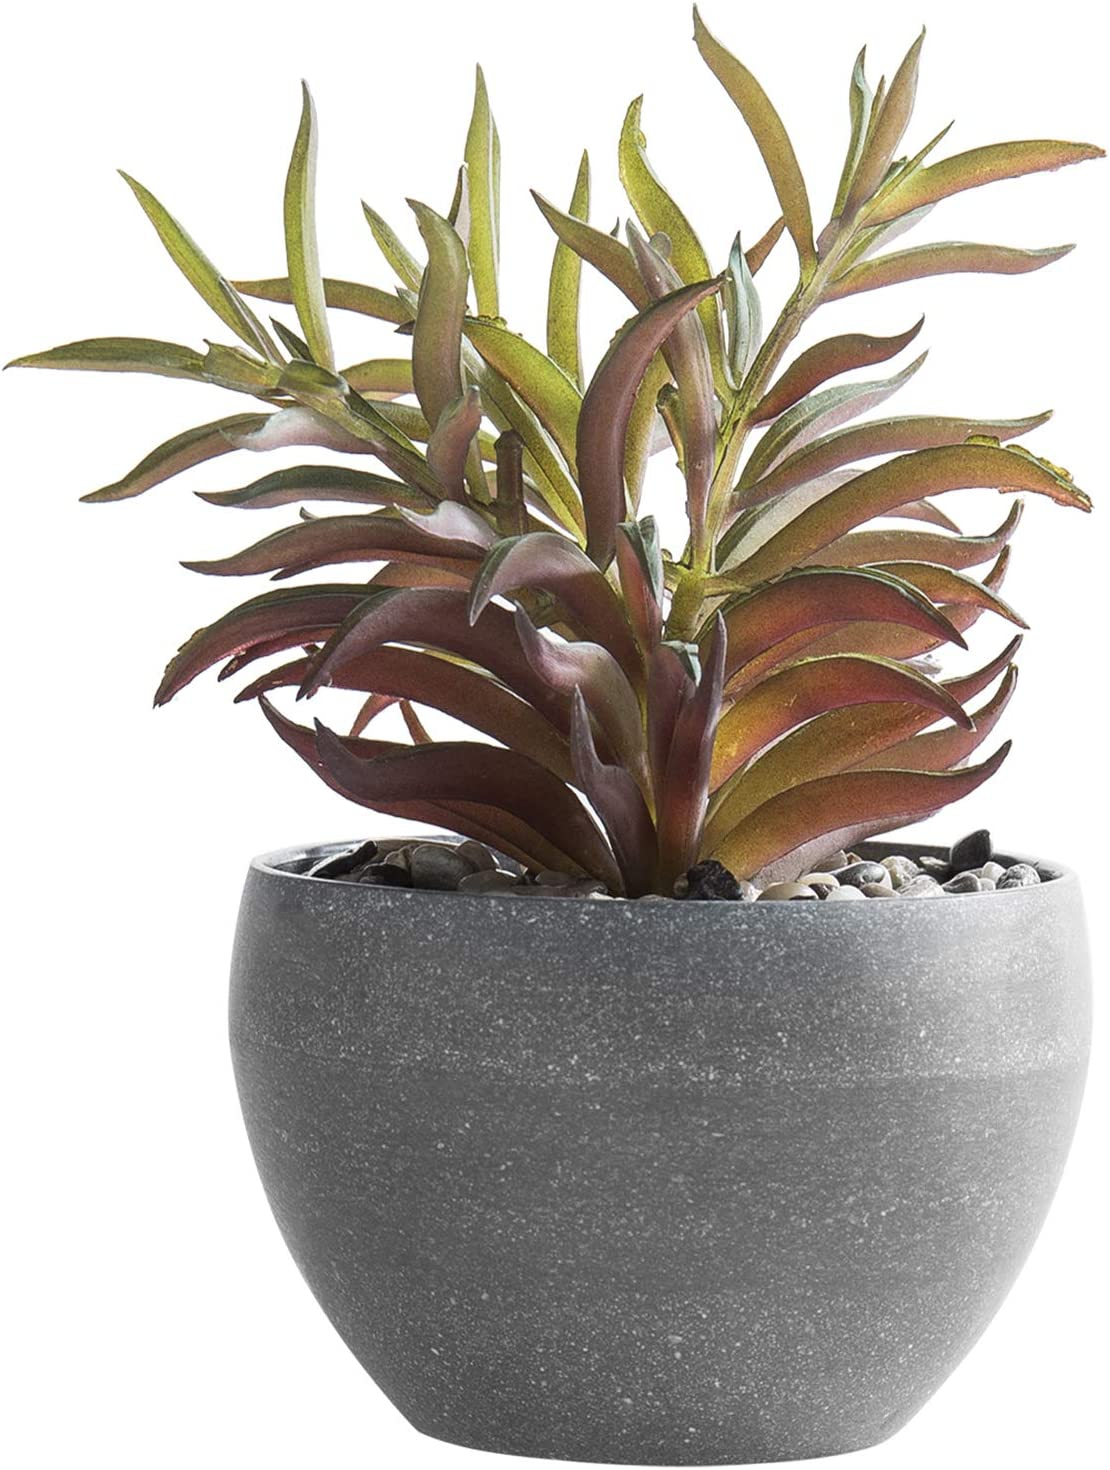 MyGift 5-inch Decorative Artificial Succulent Greenery Plant with Round Gray Melamine Planter